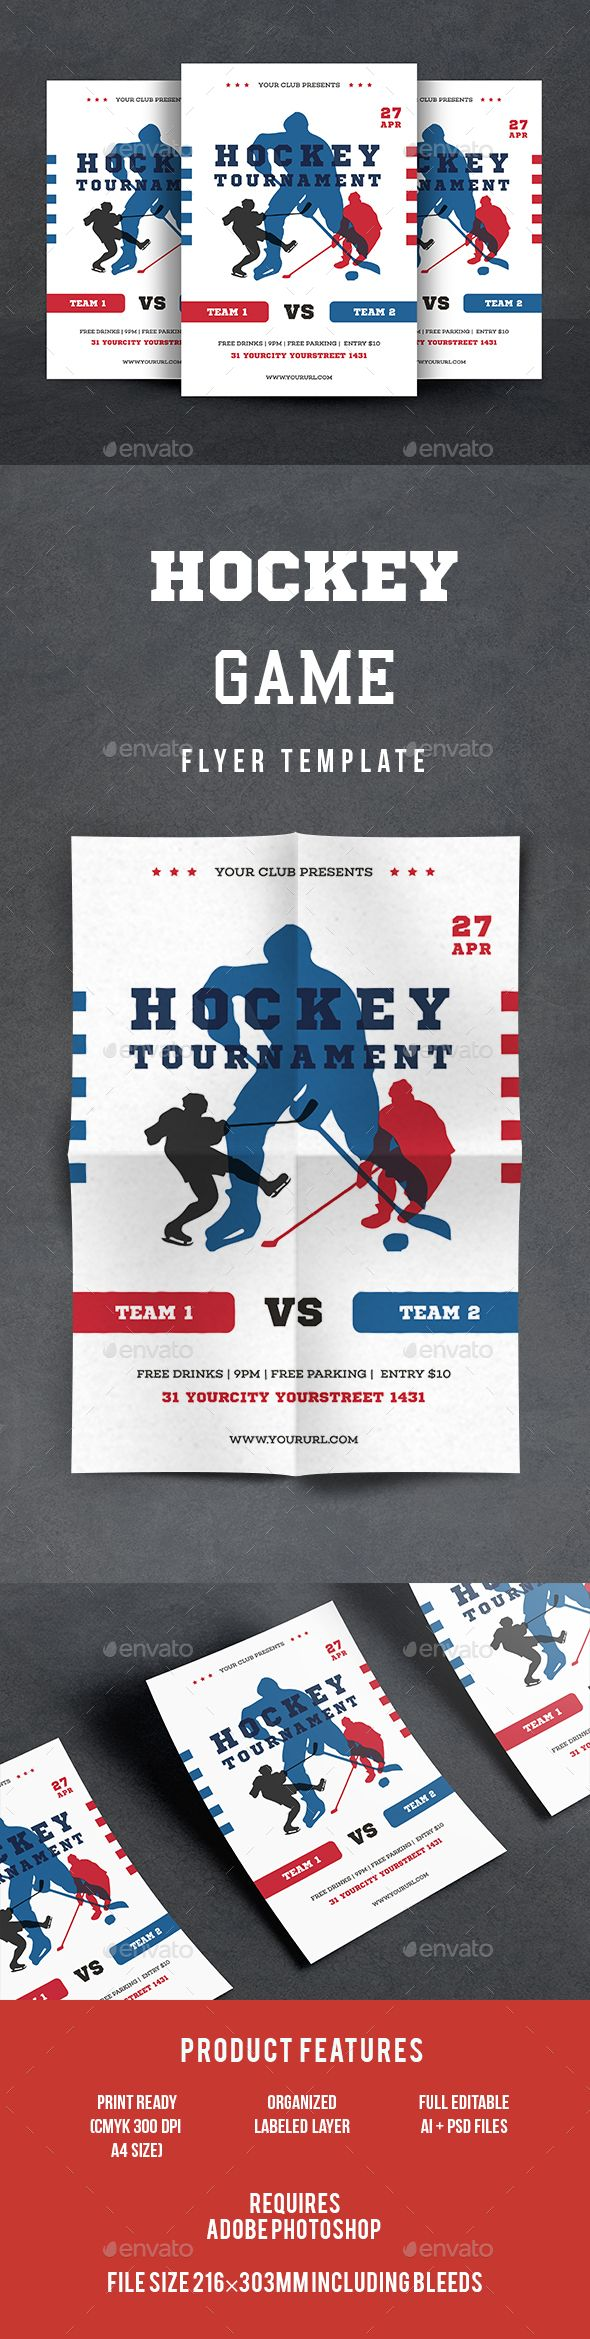 Hockey Flyer | Hockey, Flyer template and Ai illustrator